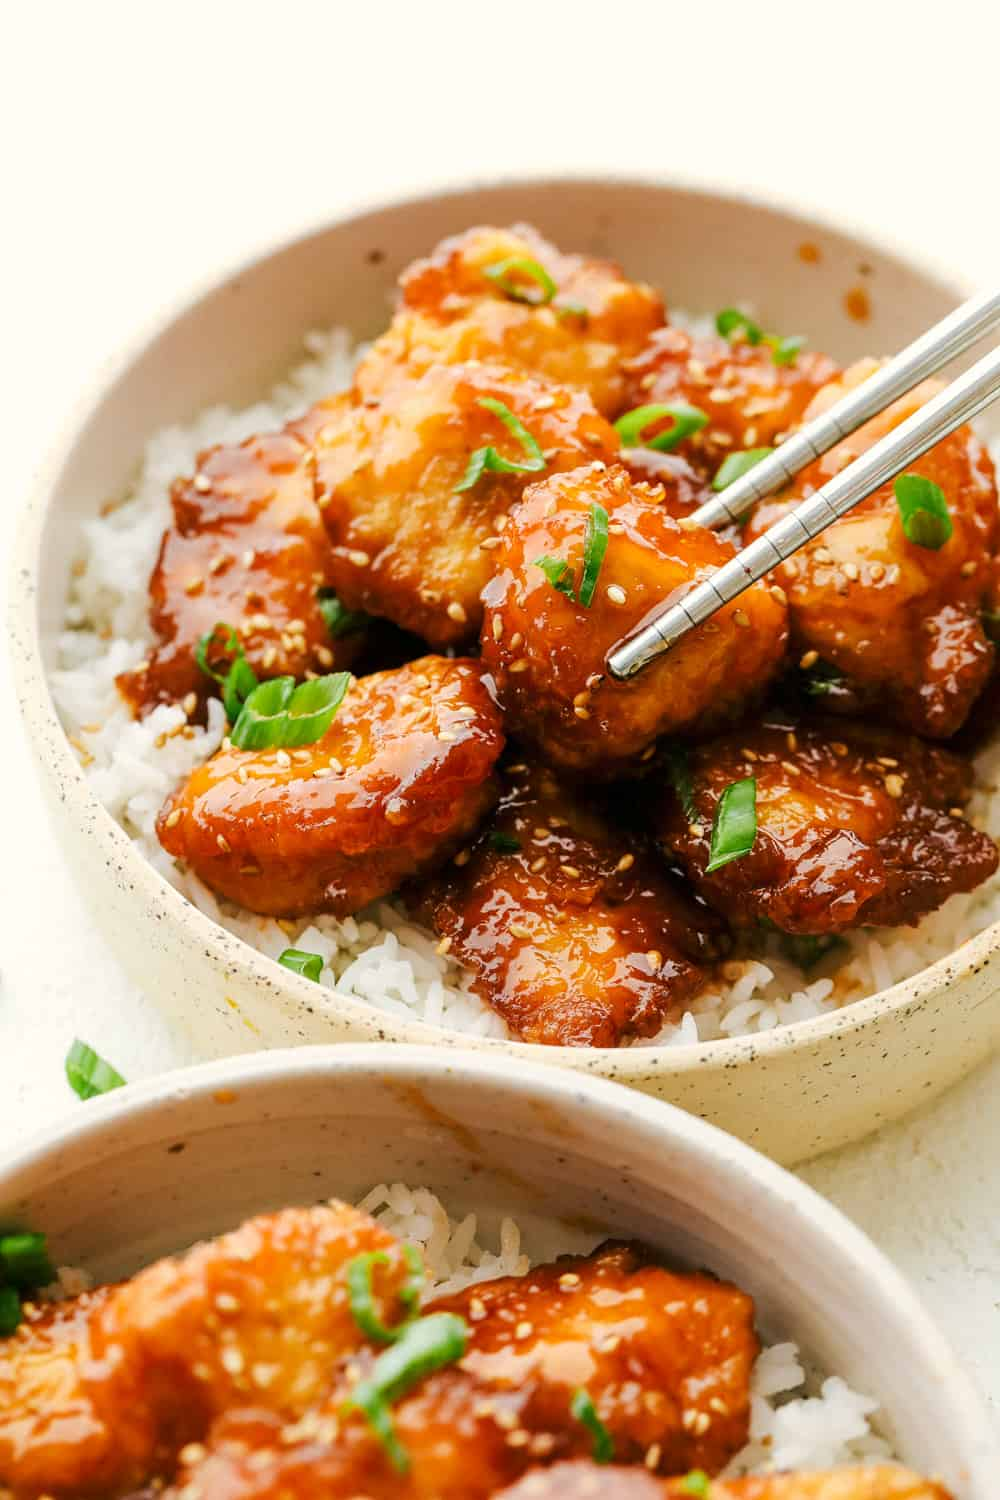 Juicy, tender Baked Sweet and Sour Chicken on top of rice.